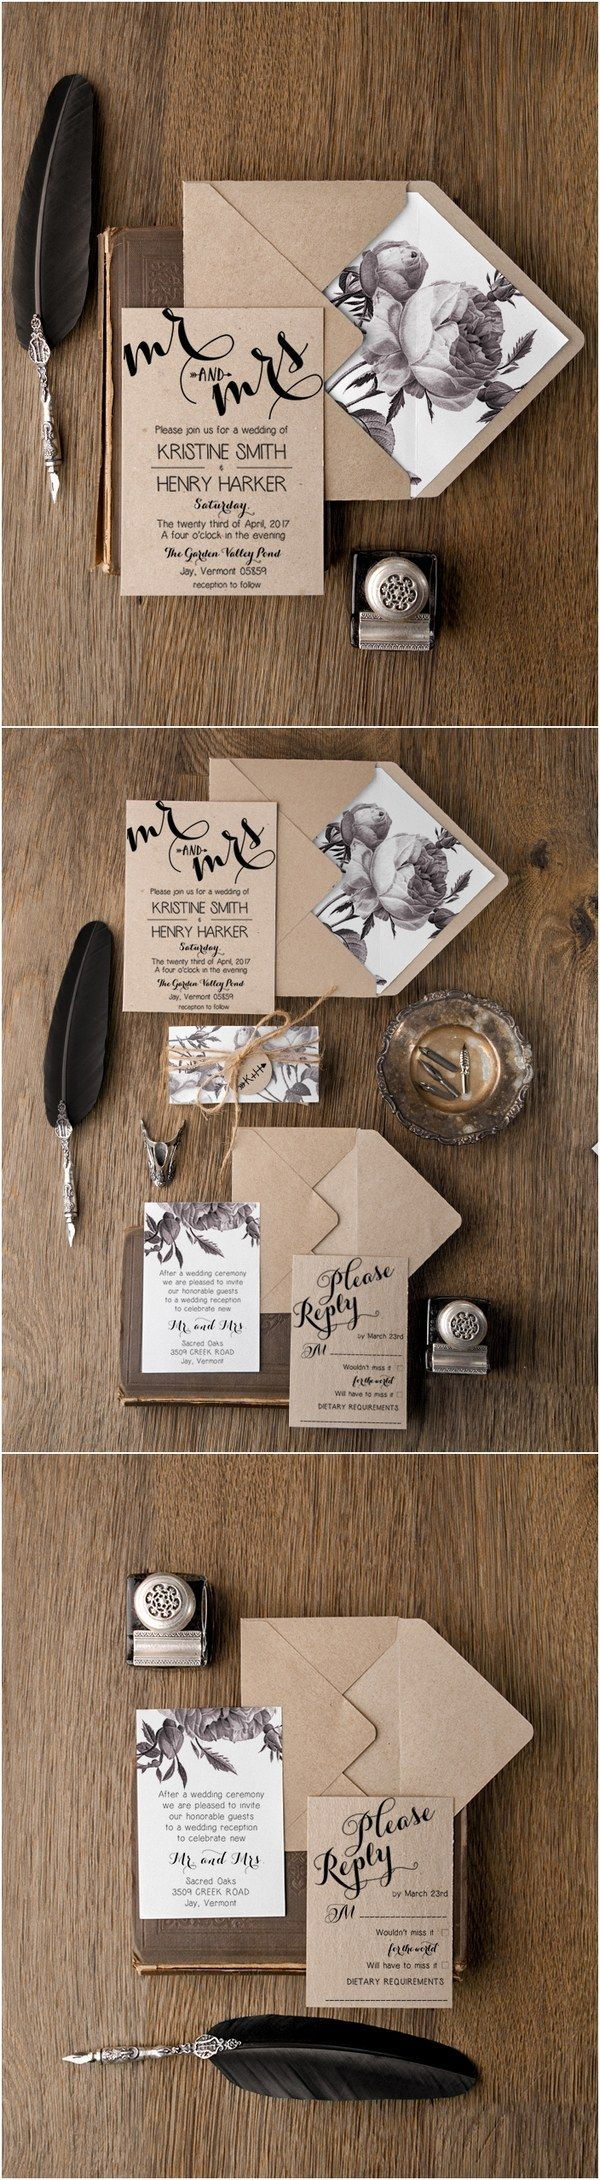 best paper images on pinterest wedding ideas wedding